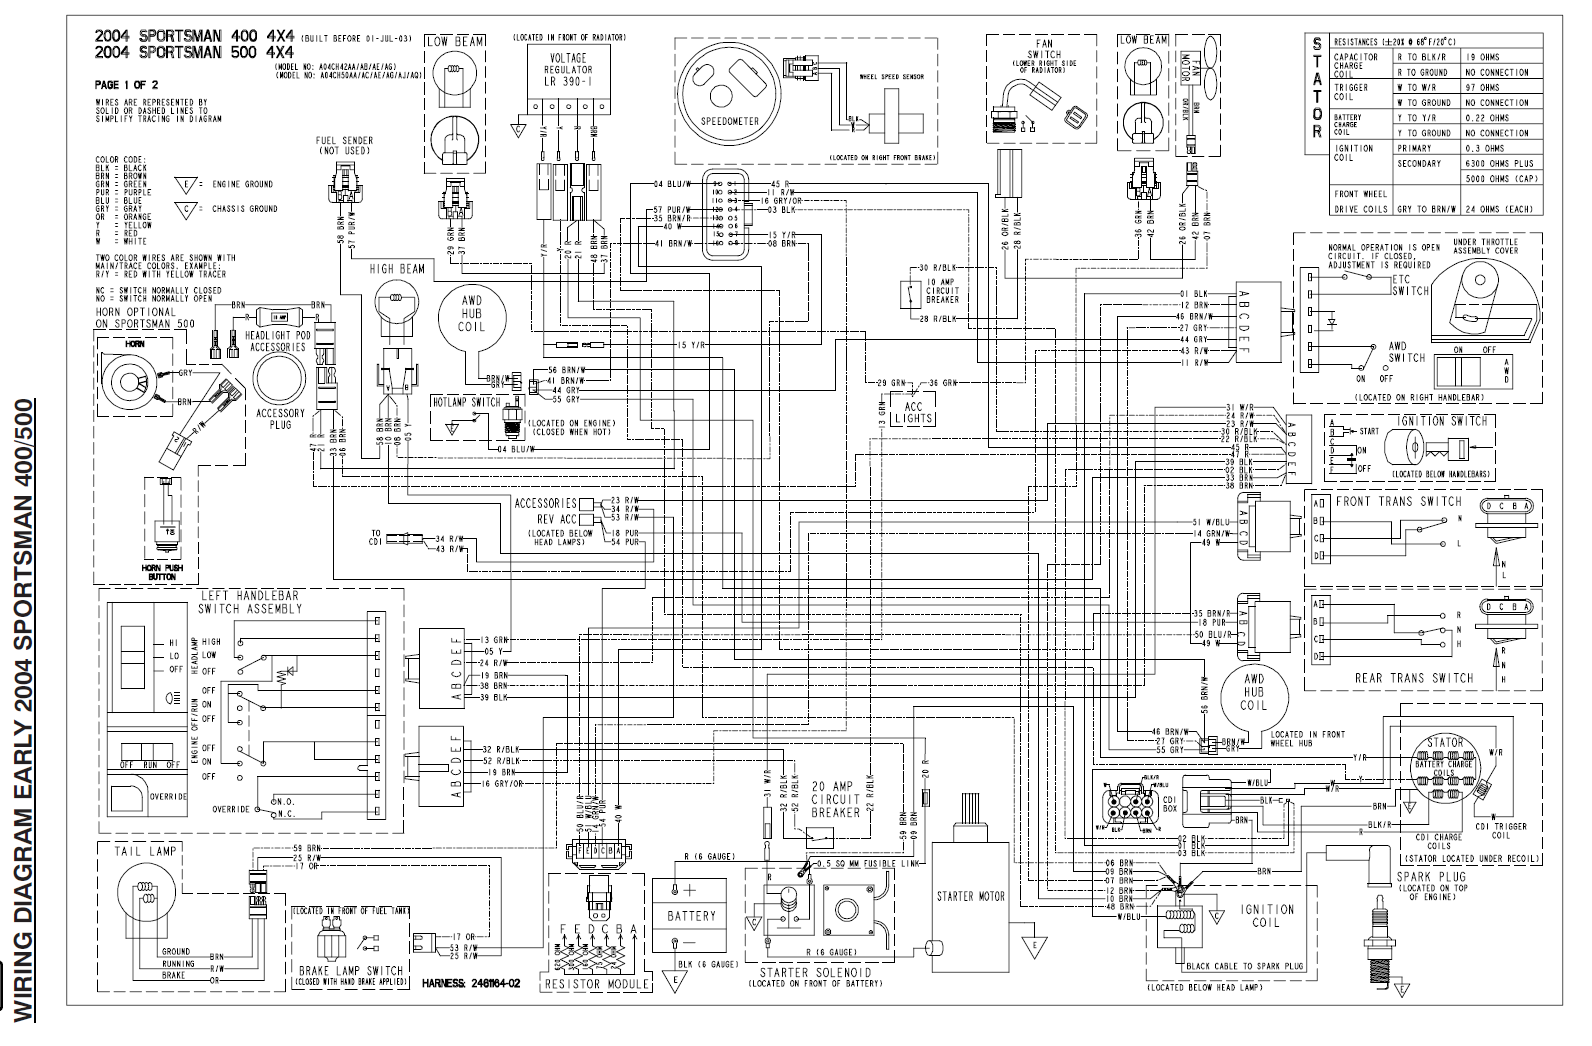 [DIAGRAM_3NM]  Sportsman 500 wiring diagram | Polaris ATV Forum | Wiring Diagram Polaris 2005 500 Ho |  | Polaris ATV Forum